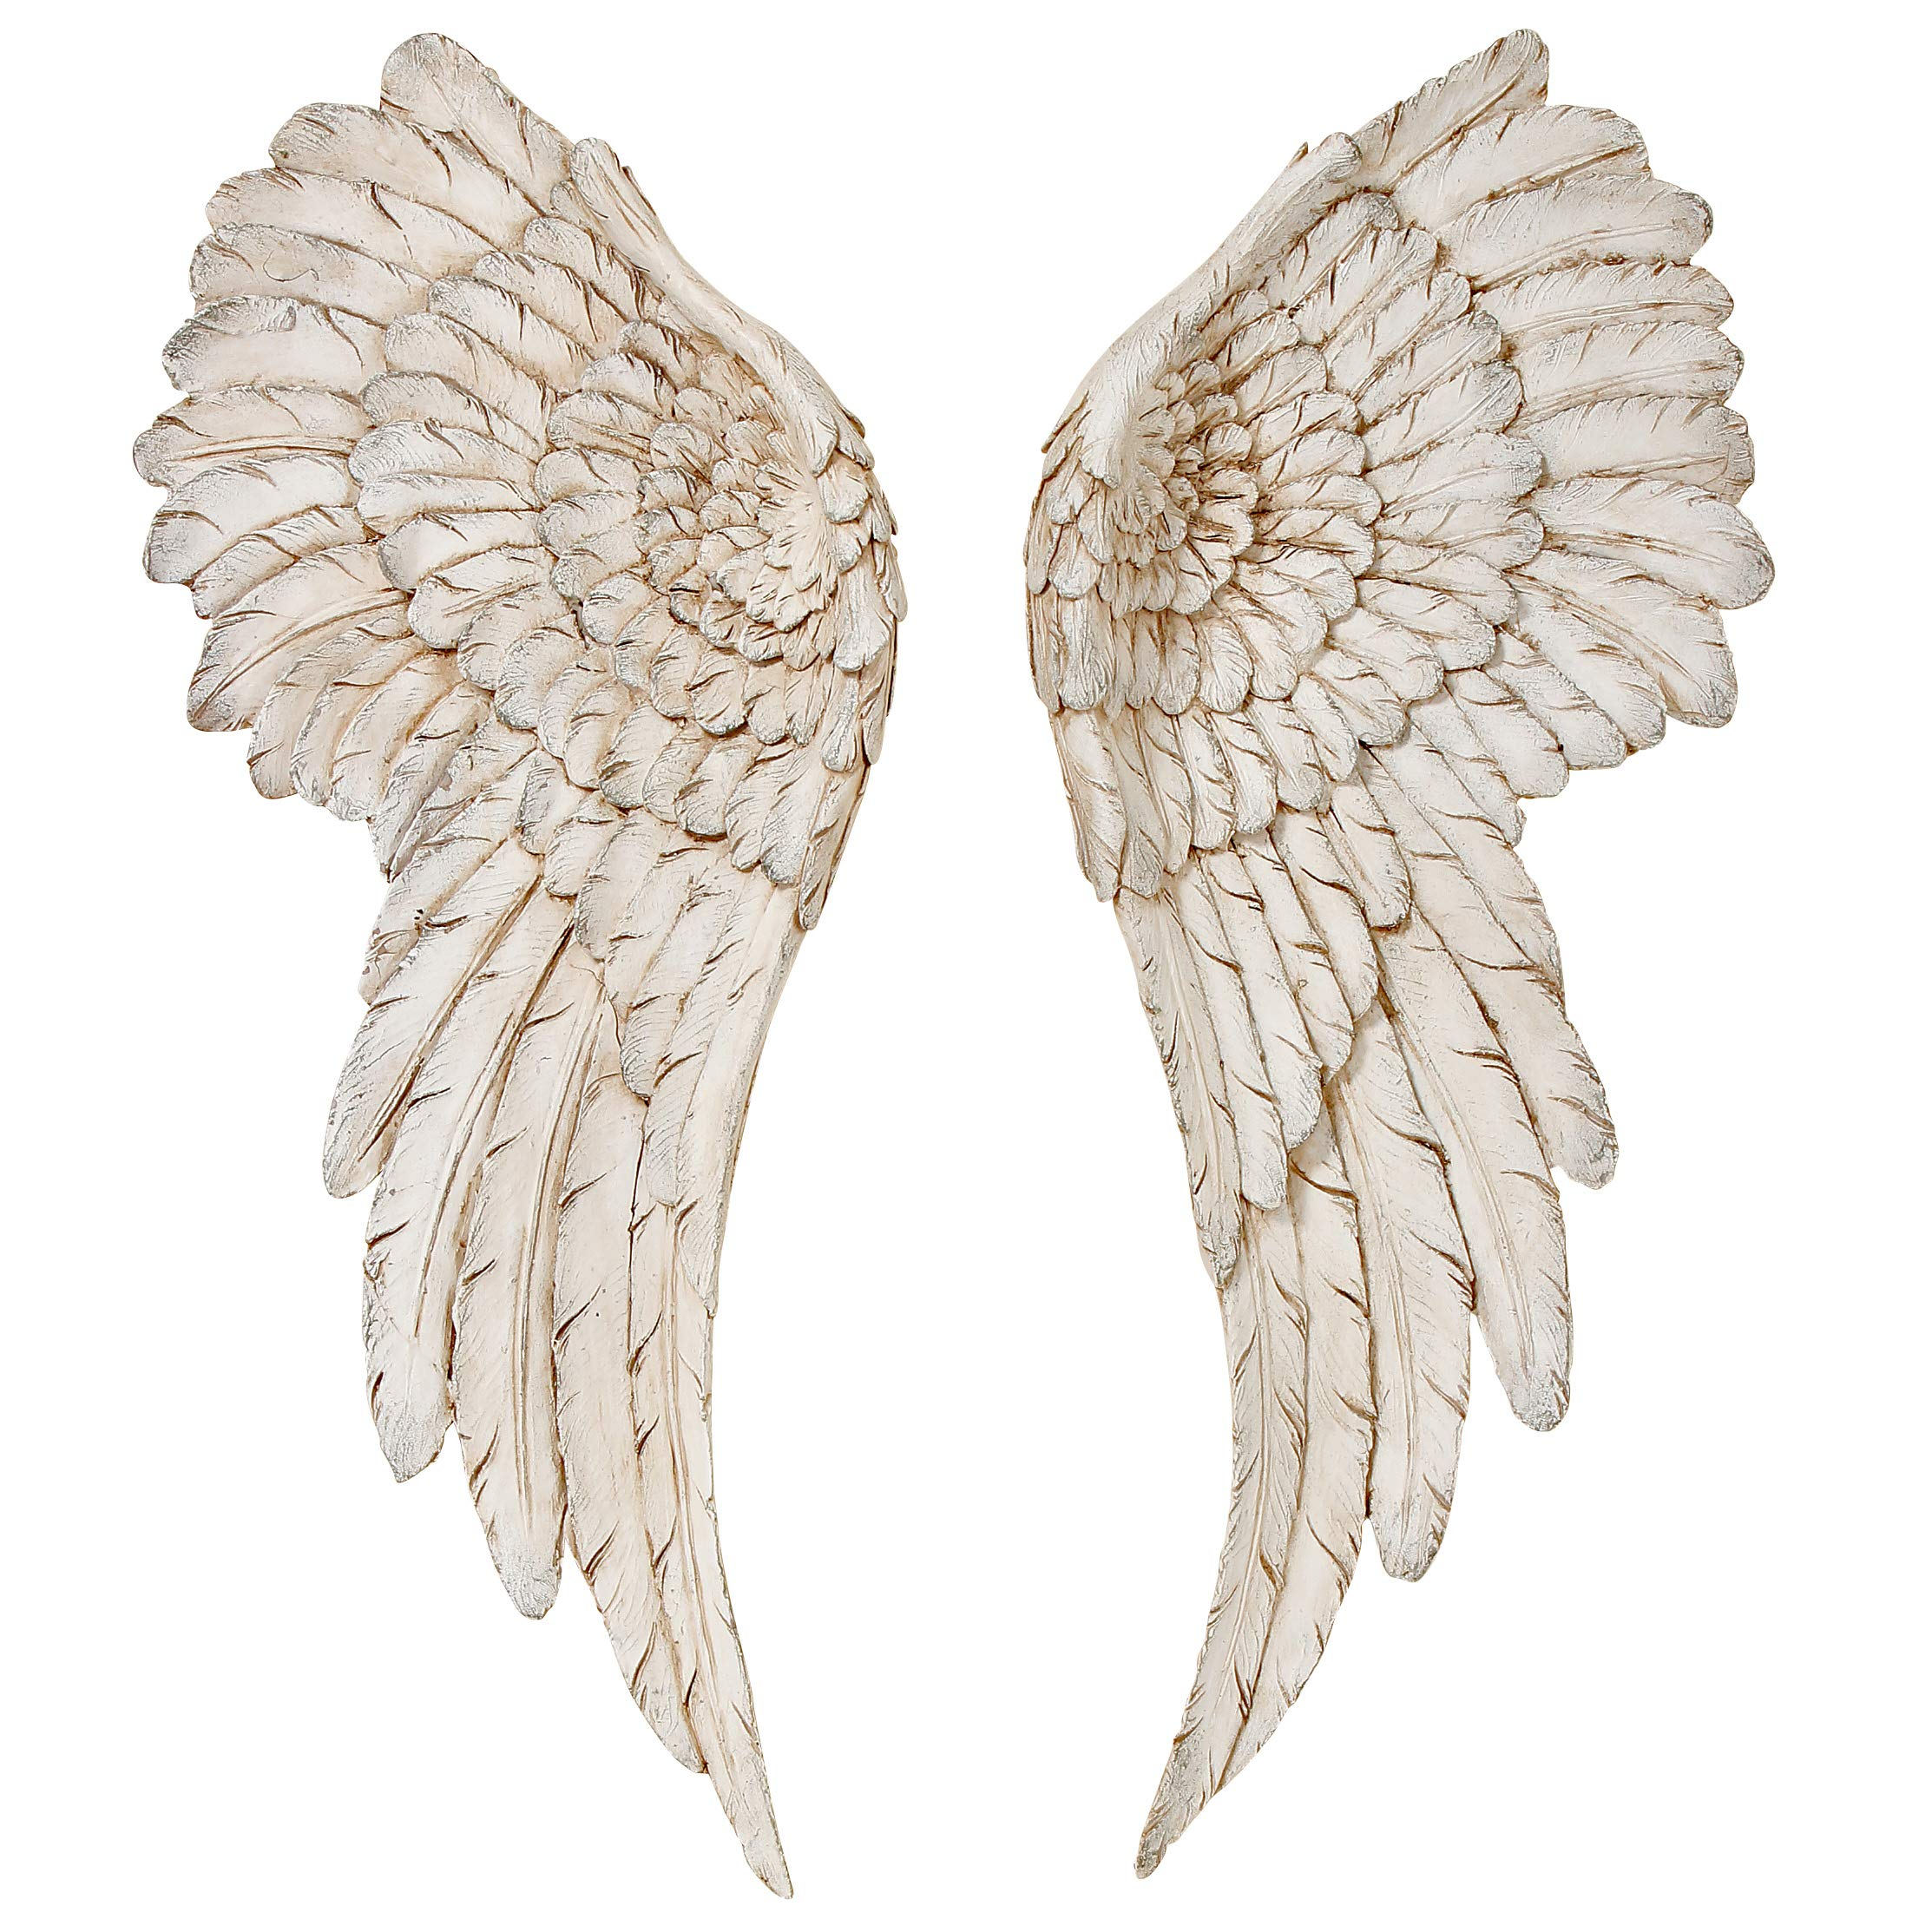 b297119d9 Angel Wings Wall Object, Vintage Style, Set of 2, H55 cm, Antique ...